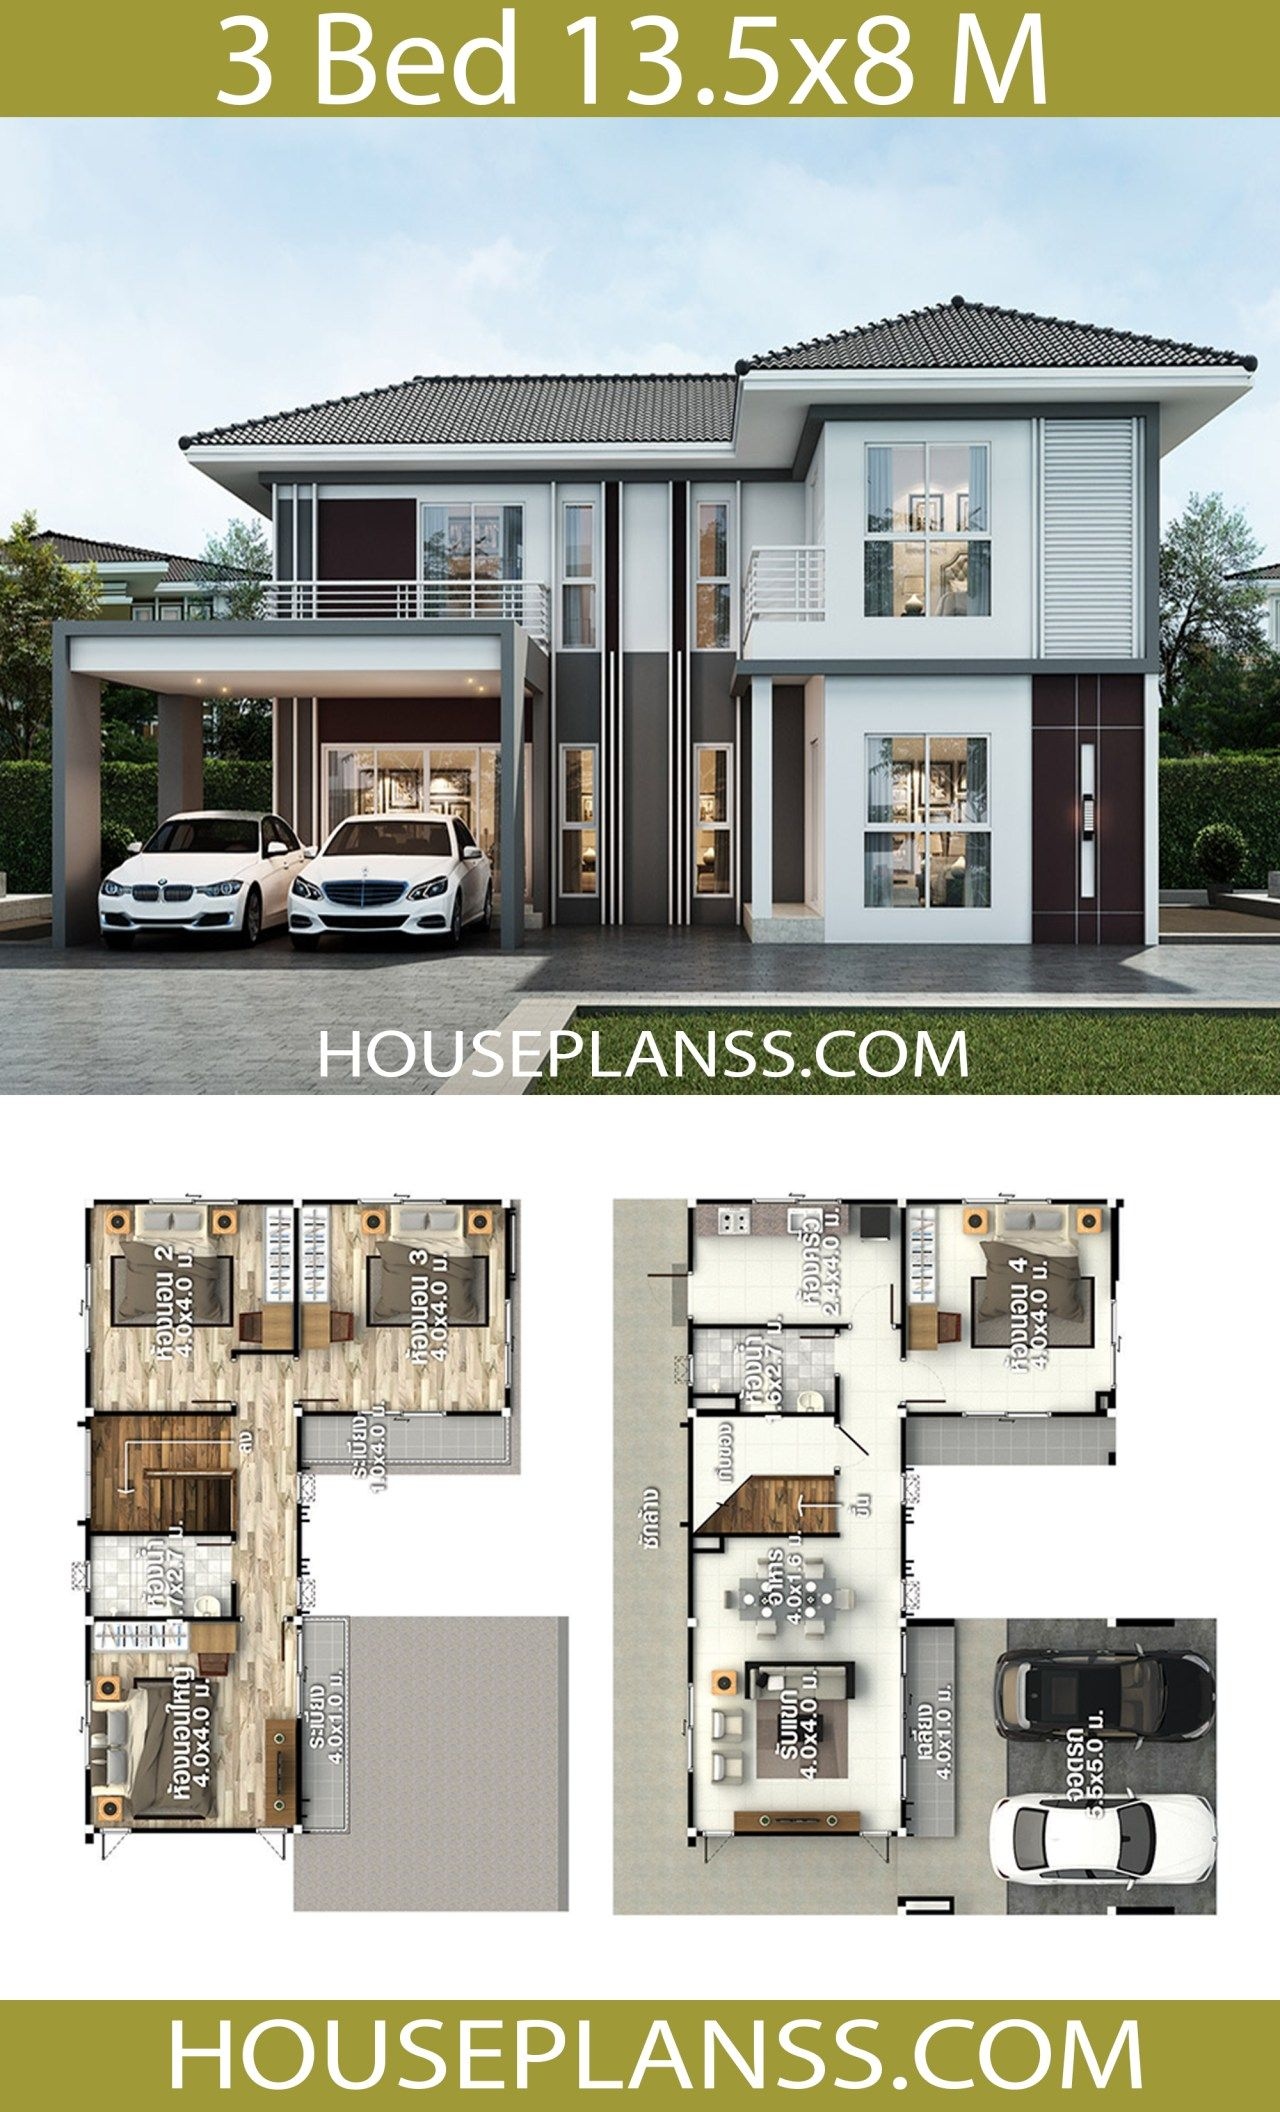 House Plans Design Idea 13 5x8 With 3 Bedrooms House Plans 3d Modern Style House Plans Small House Design Plans Home Design Plans